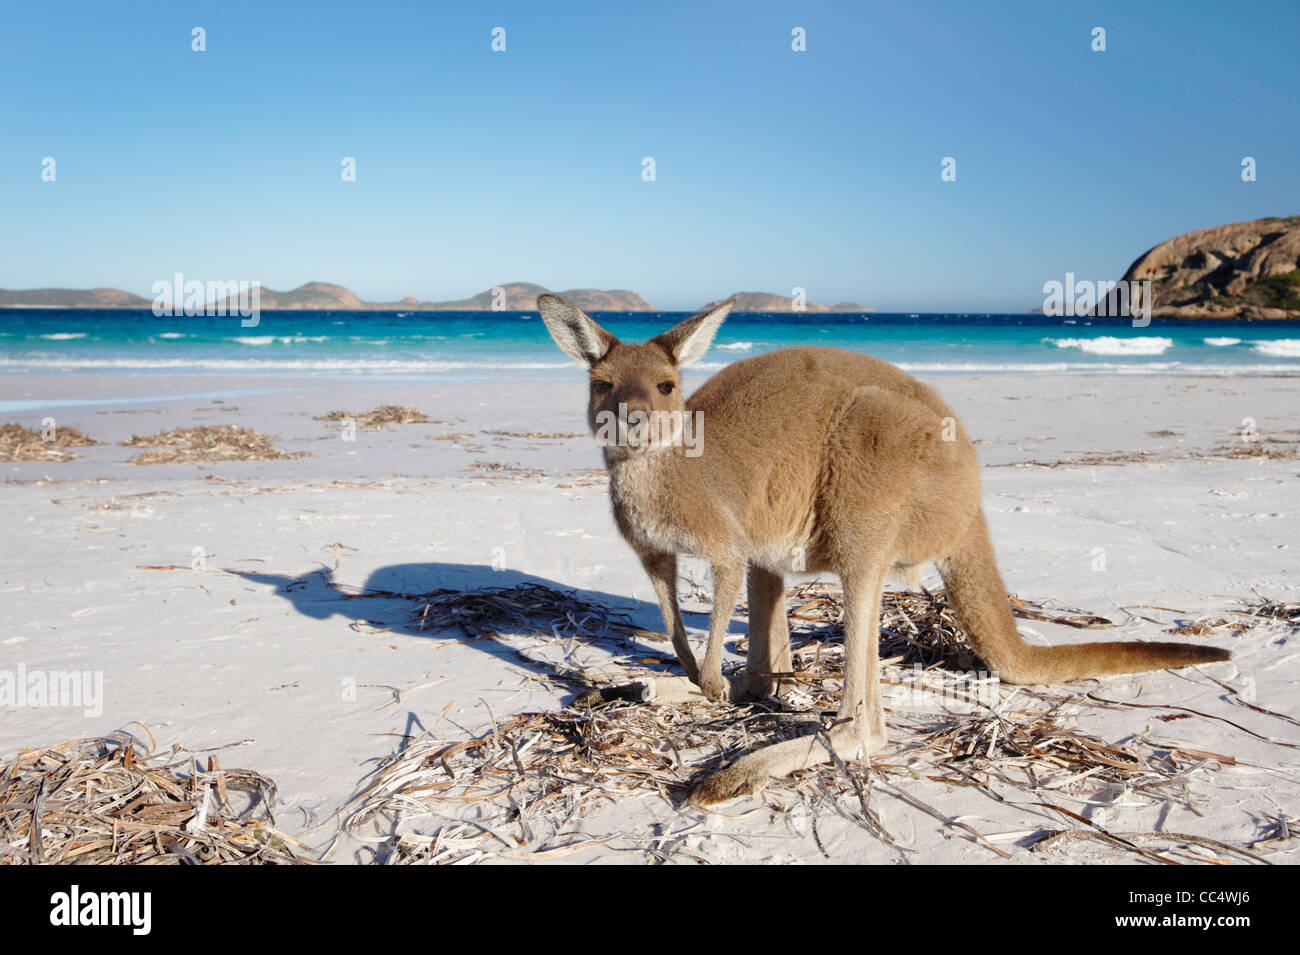 Kangaroo on the beach, Lucky Bay, Cape Le Grand National Park, Western Australia, Australia Stock Photo